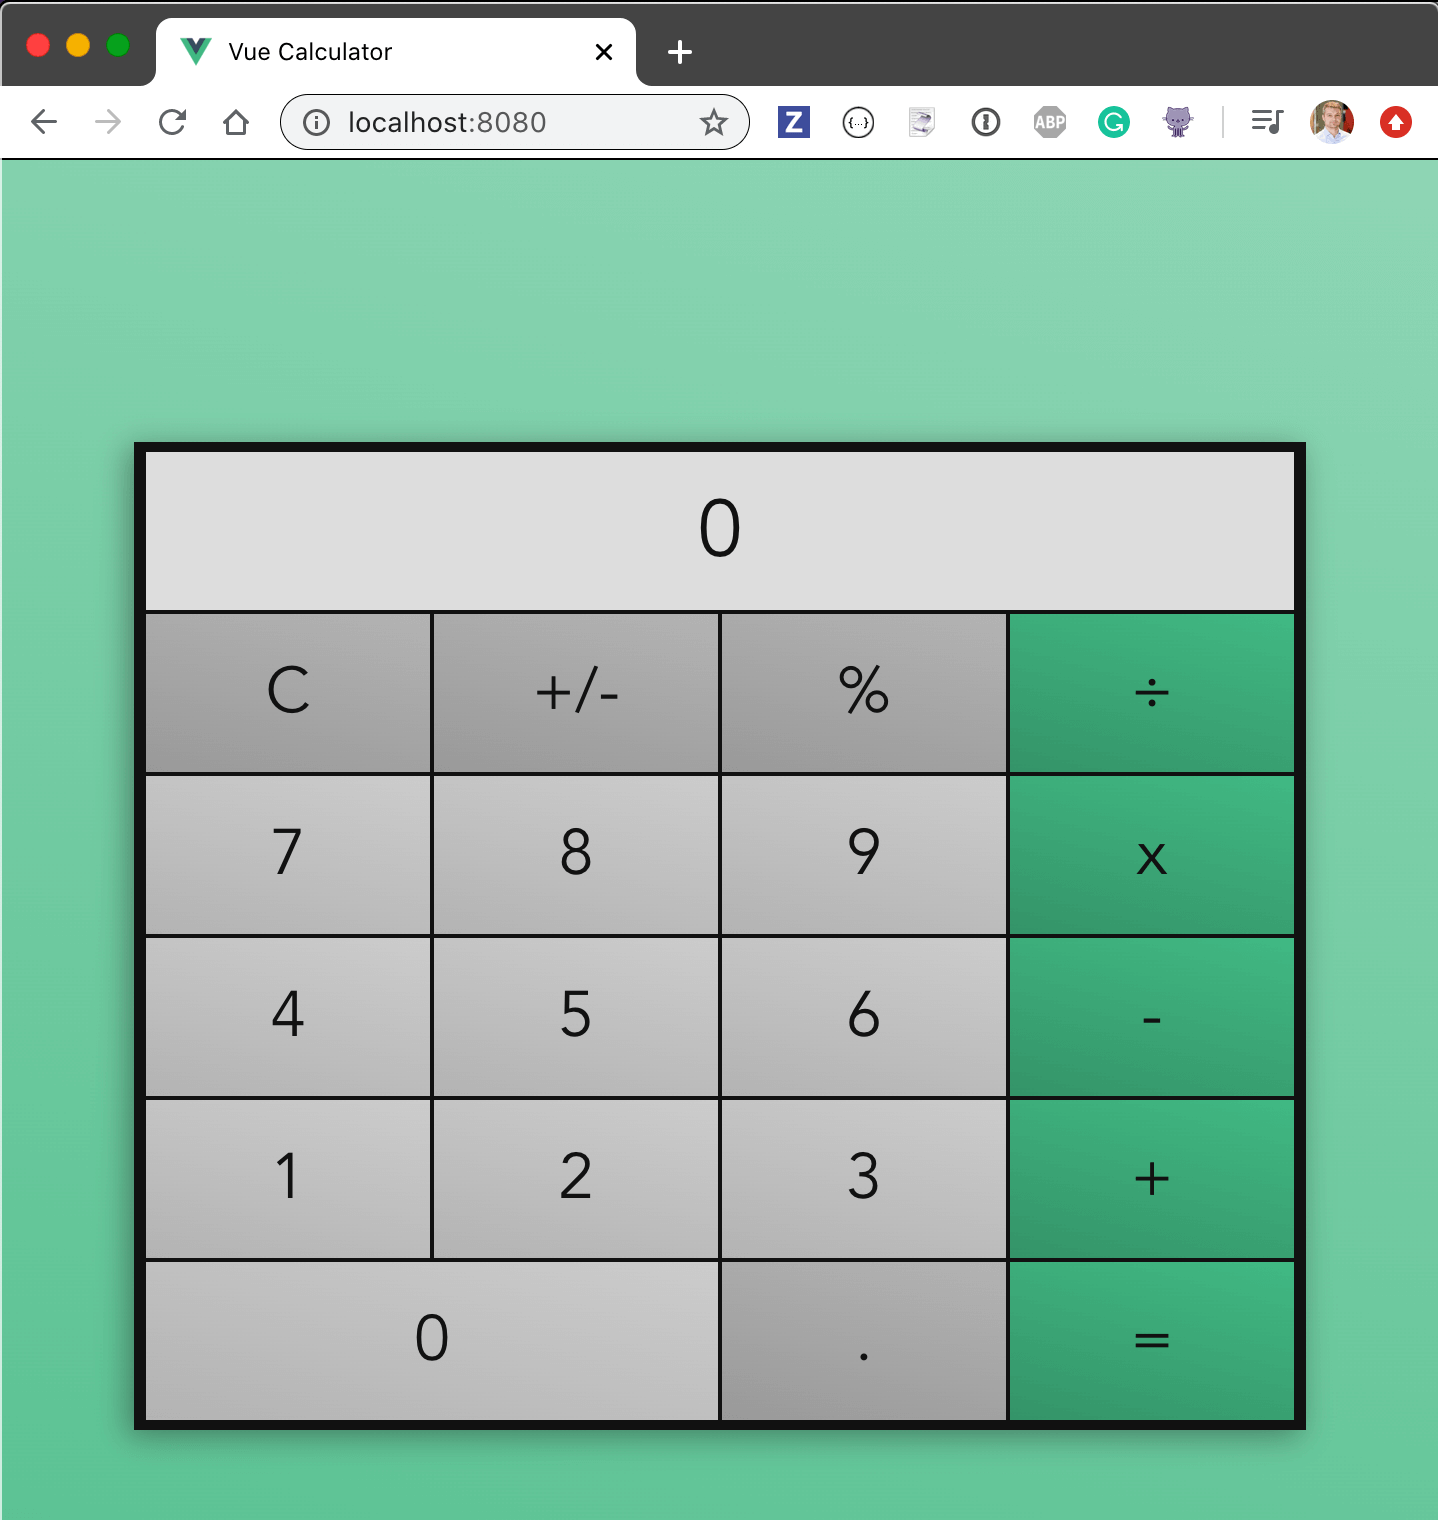 Vue calculator application